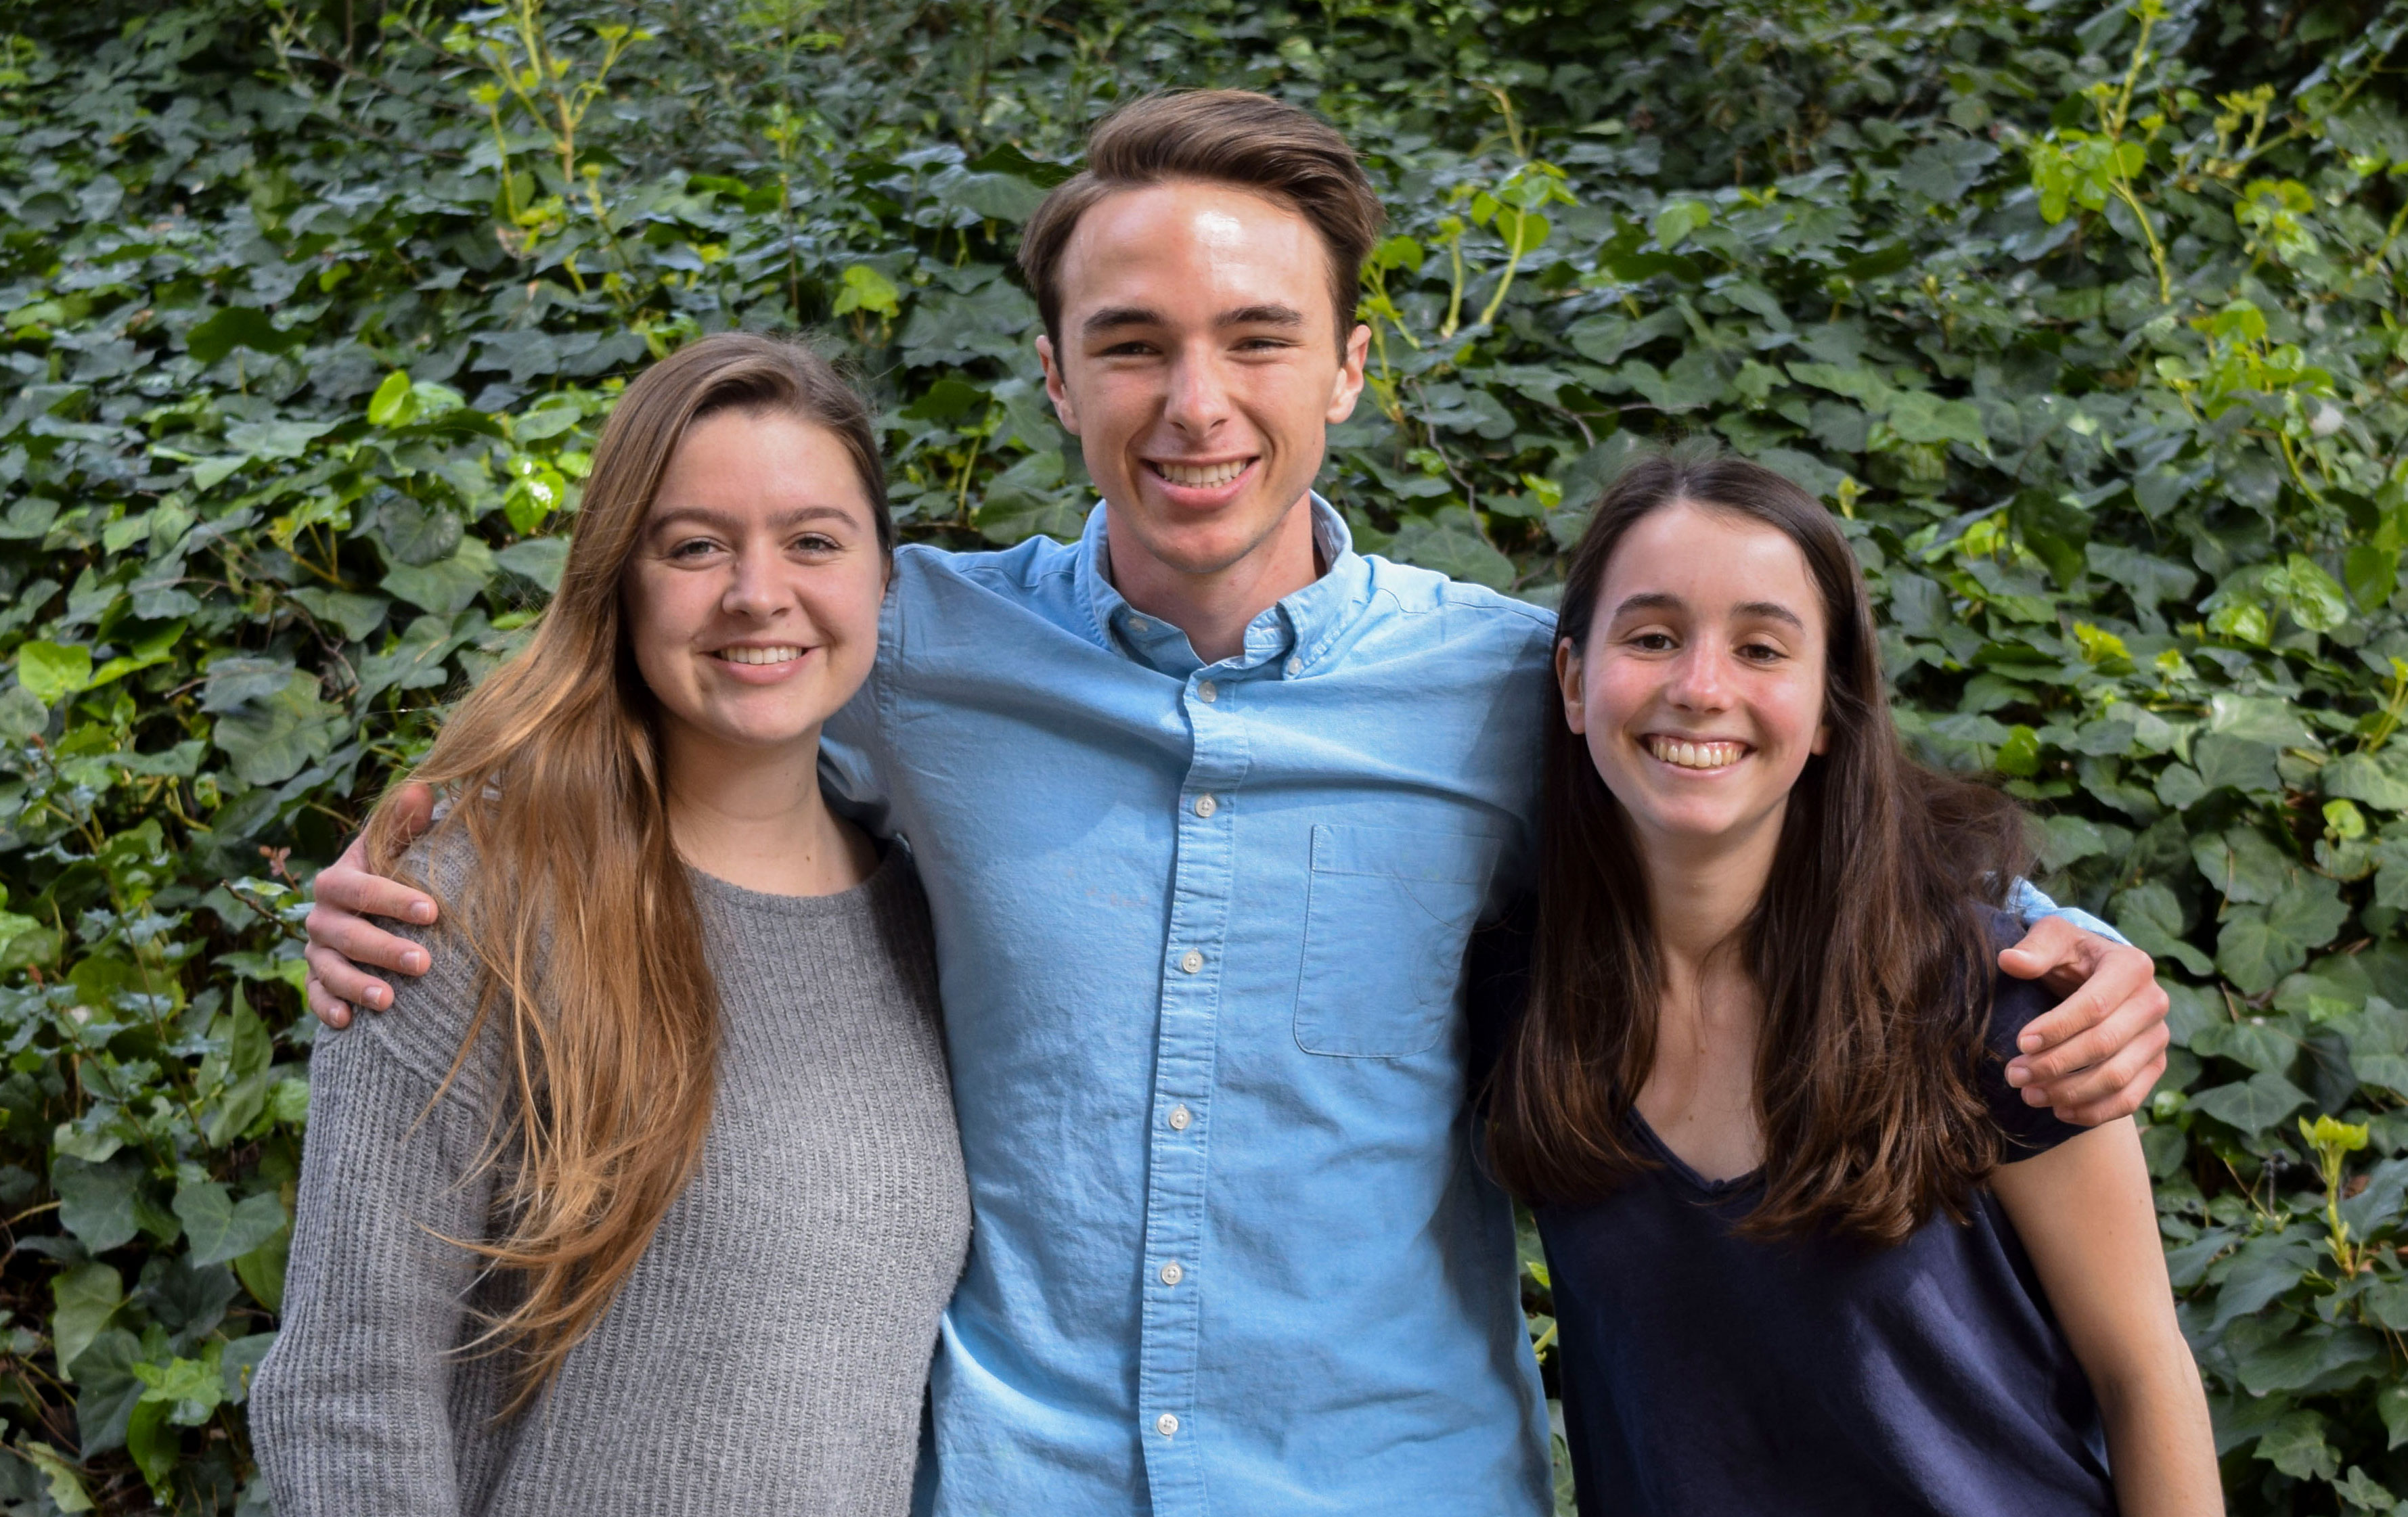 Three students standing together and smiling at camera